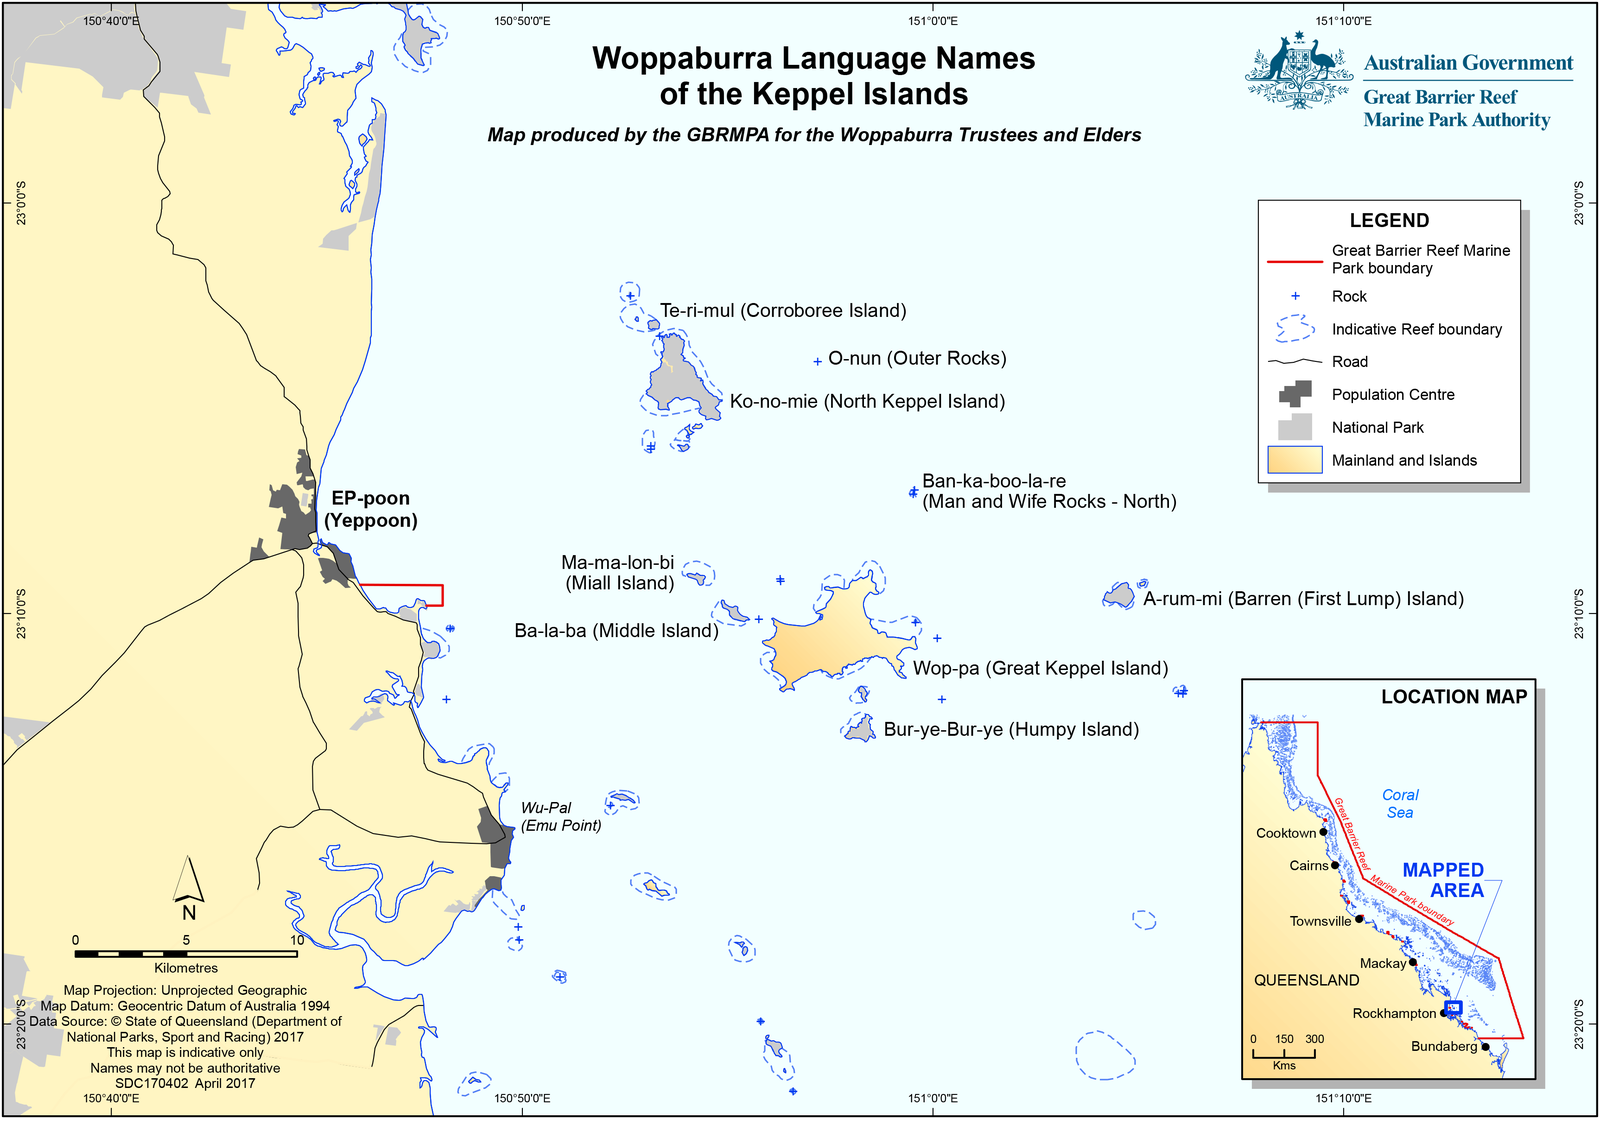 Woppaburra Language Names of the Keppel Islands